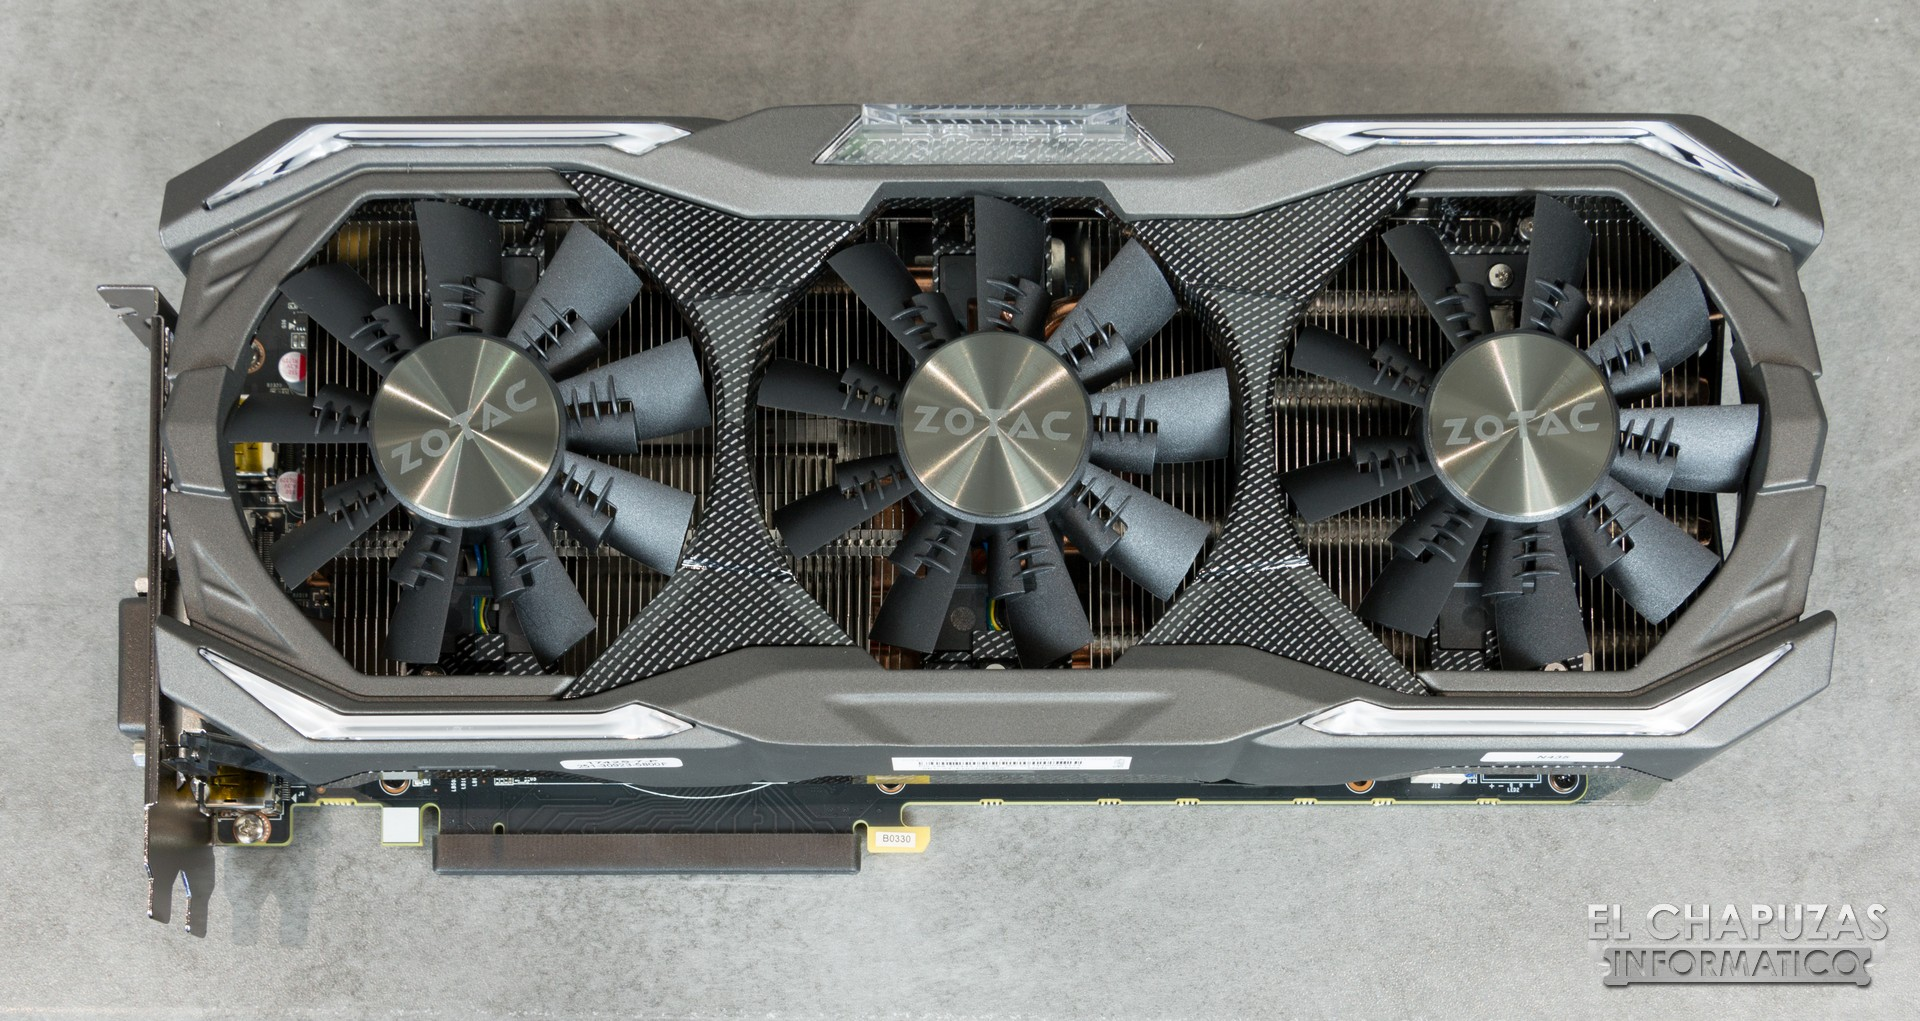 1070 ti amp extreme review